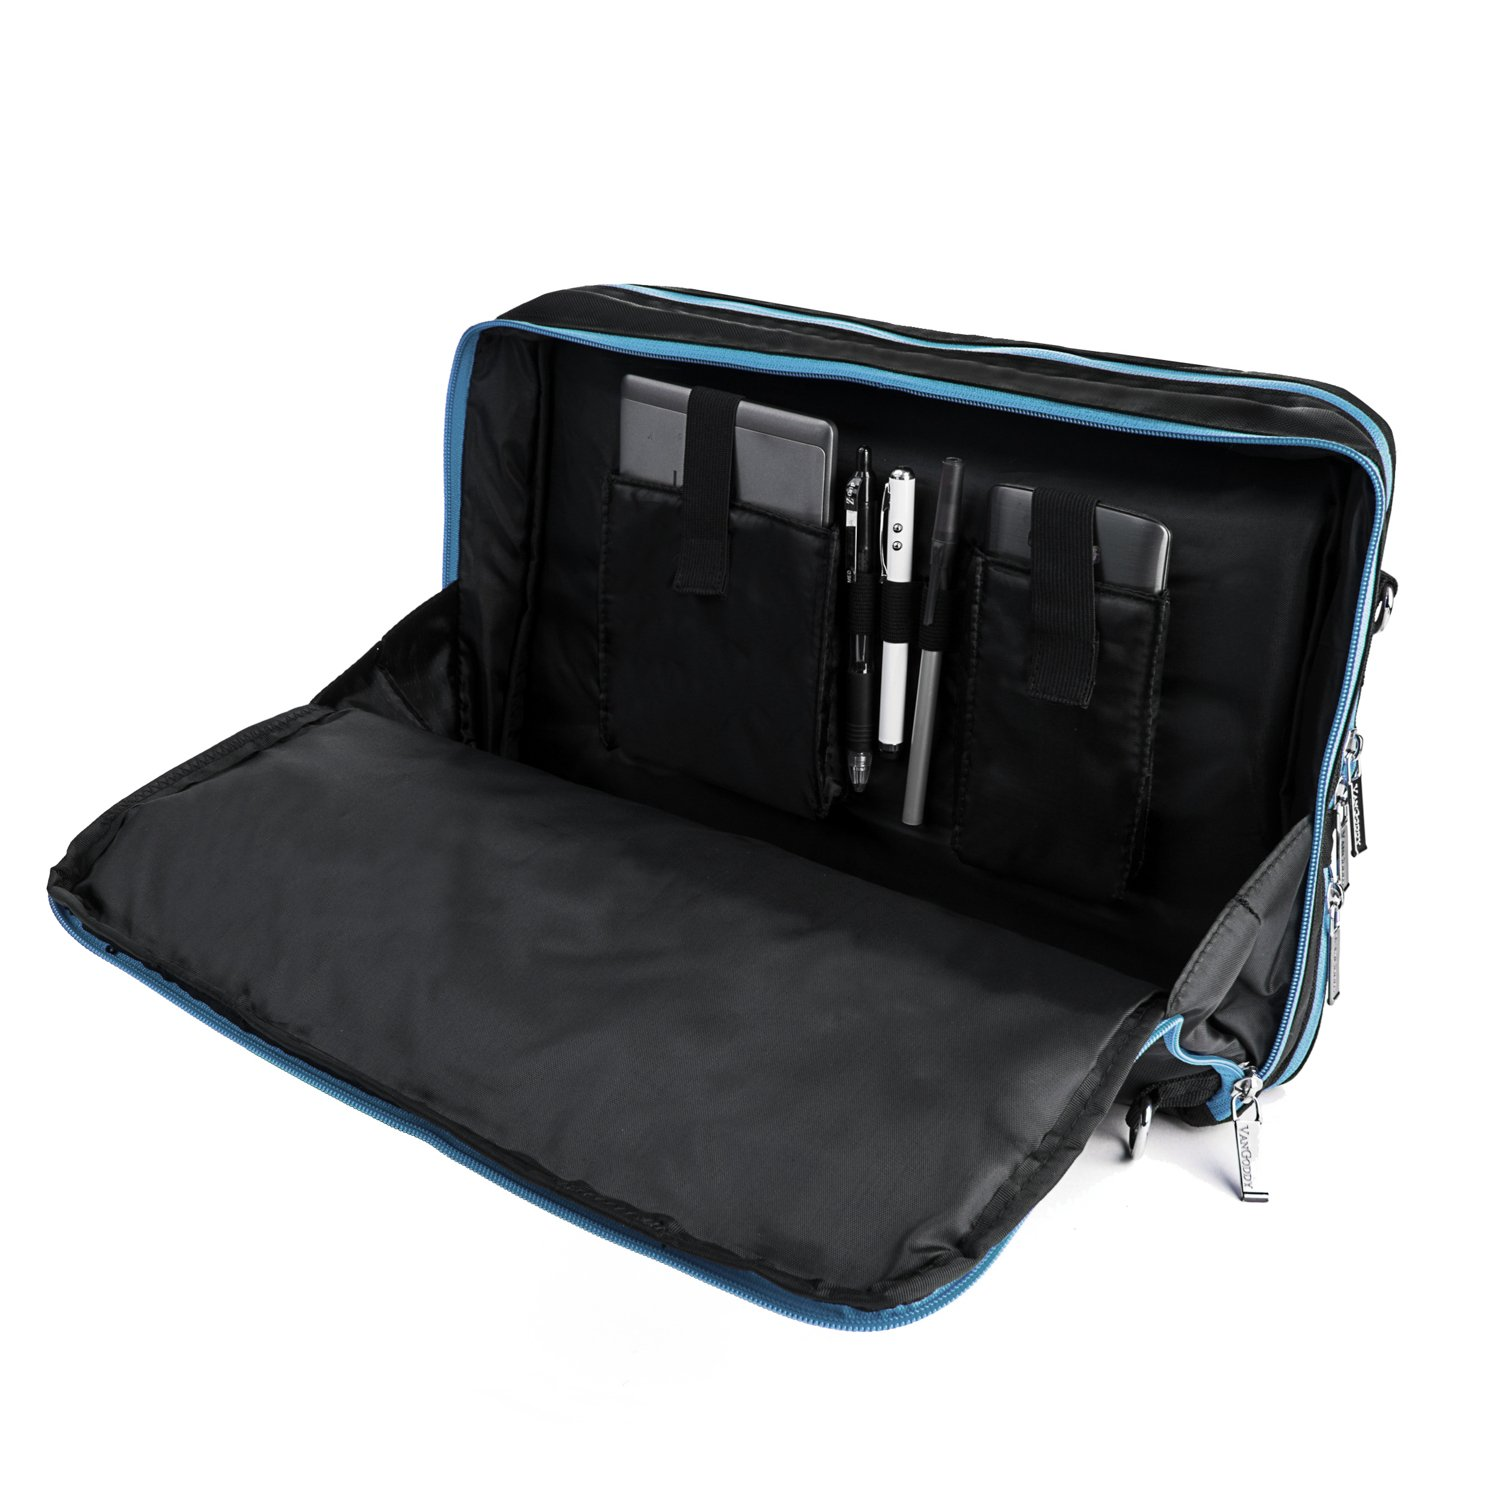 ddca12fb9976 Amazon.com: Messenger Bag Backpack 2-in-1 for Microsoft Surface Book ...